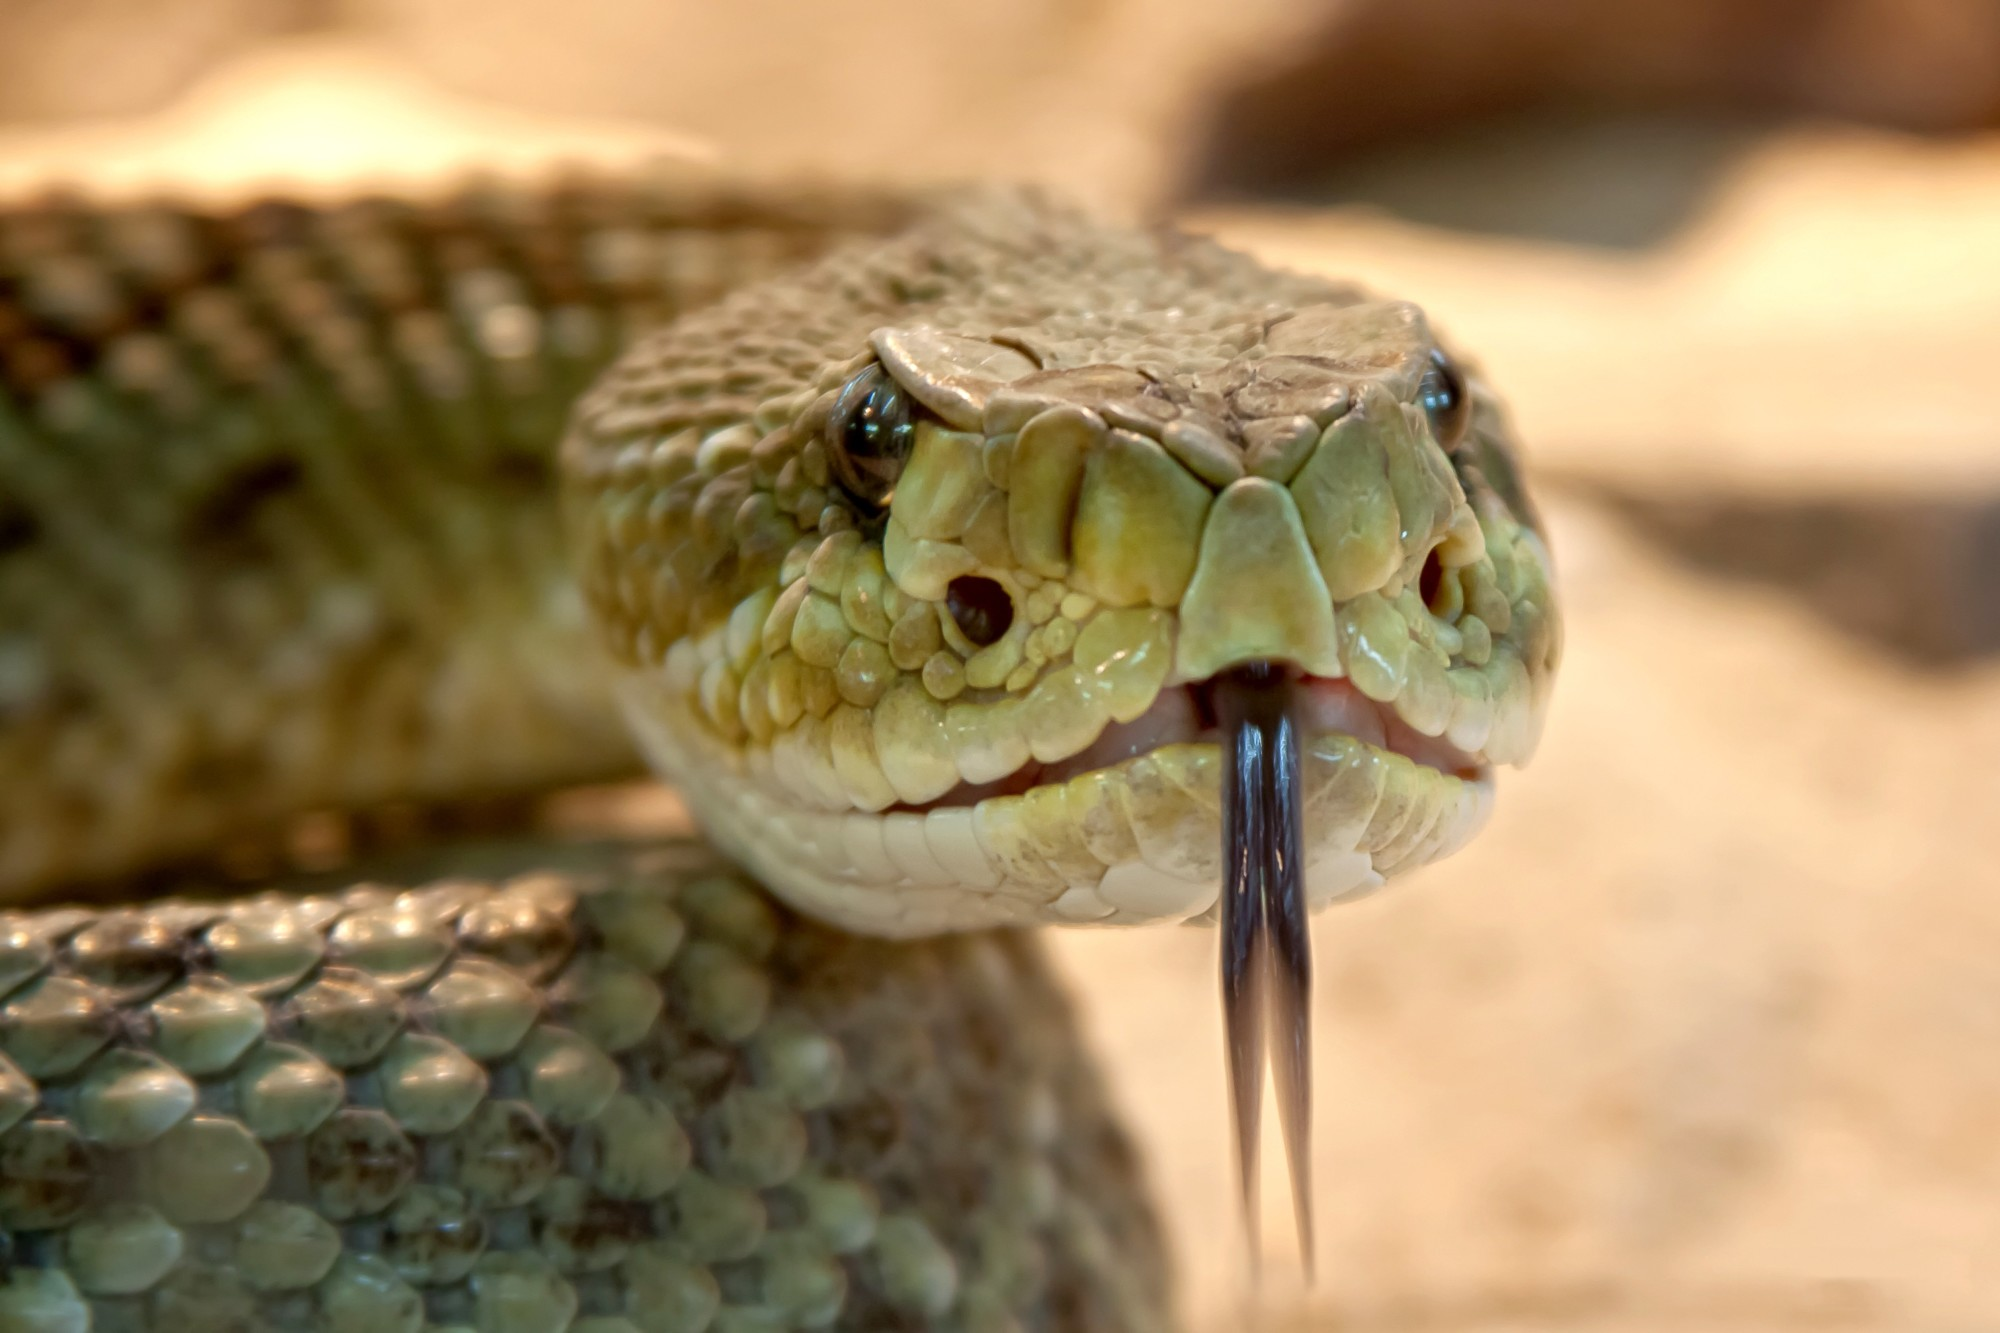 Yikes! What Do You Do If You See a Snake in Your Backyard?